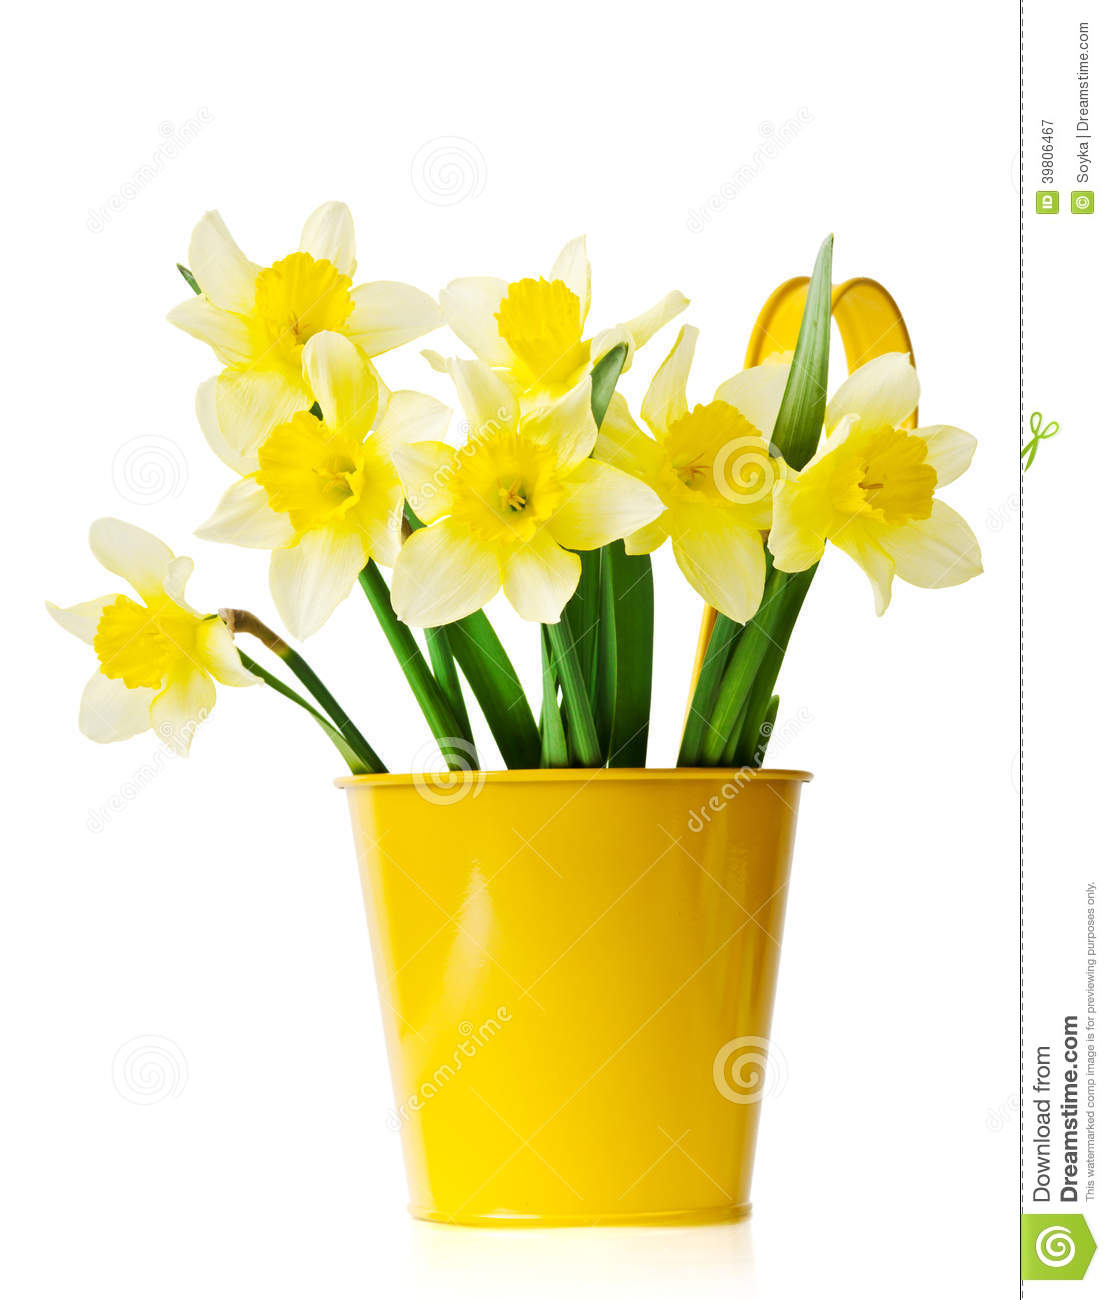 jonquilles dans un pot de fleurs jaune photo stock image 39806467. Black Bedroom Furniture Sets. Home Design Ideas